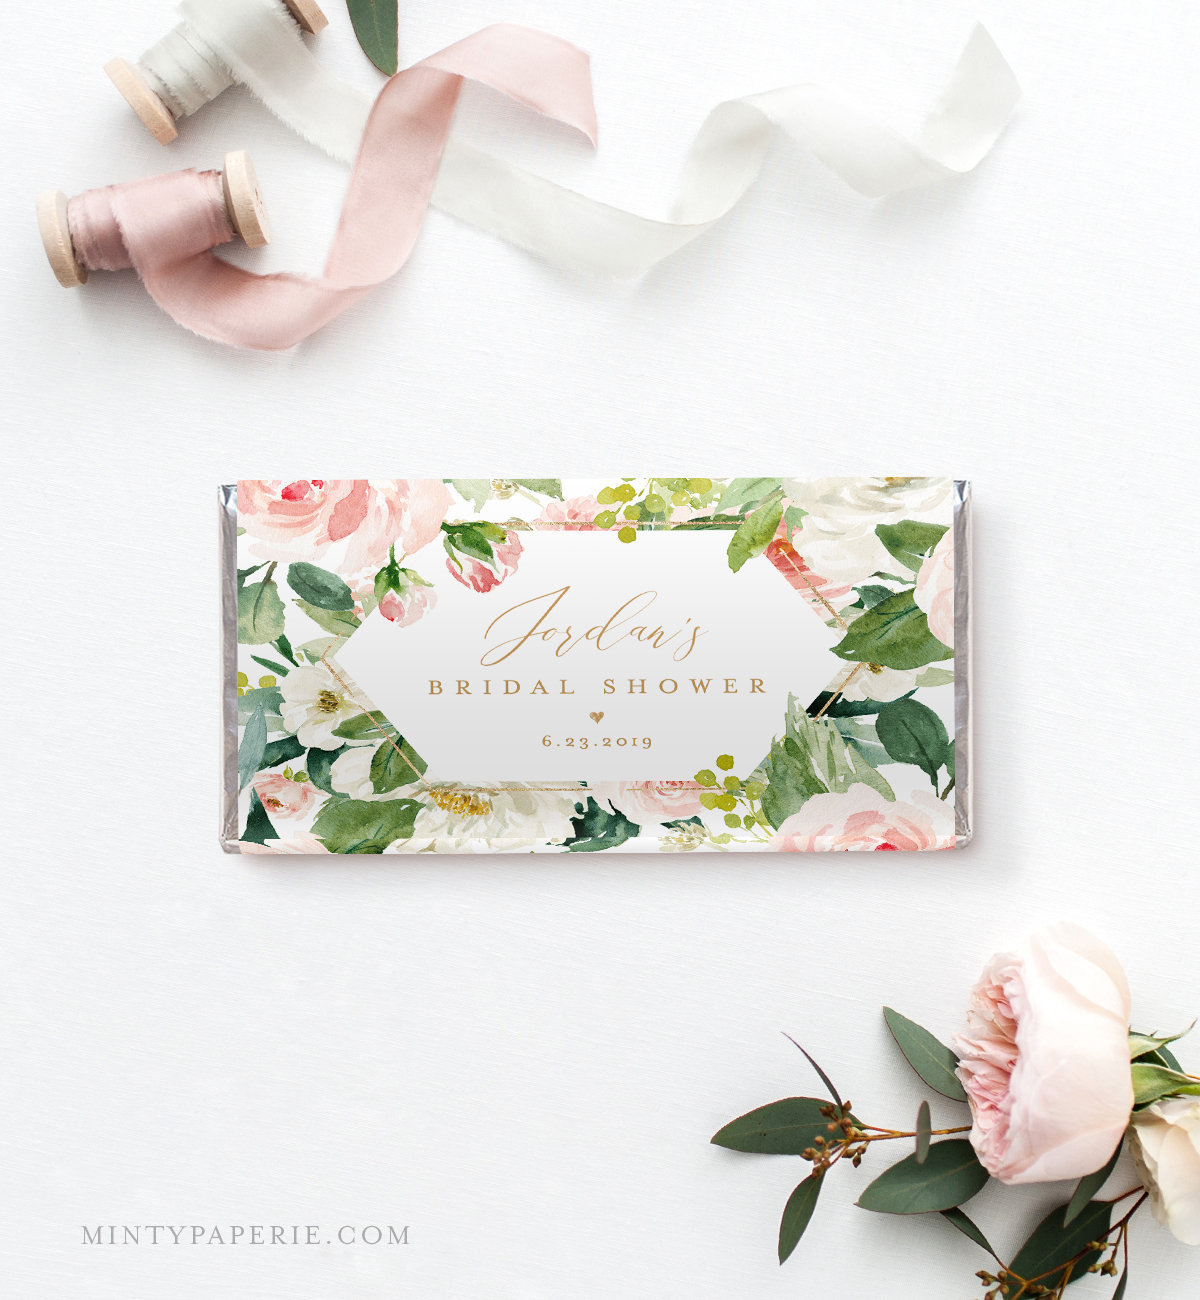 Chocolate Bar Wrapper Template, Printable Candy Bar Wrapper For - Free Printable Candy Bar Wrappers For Bridal Shower